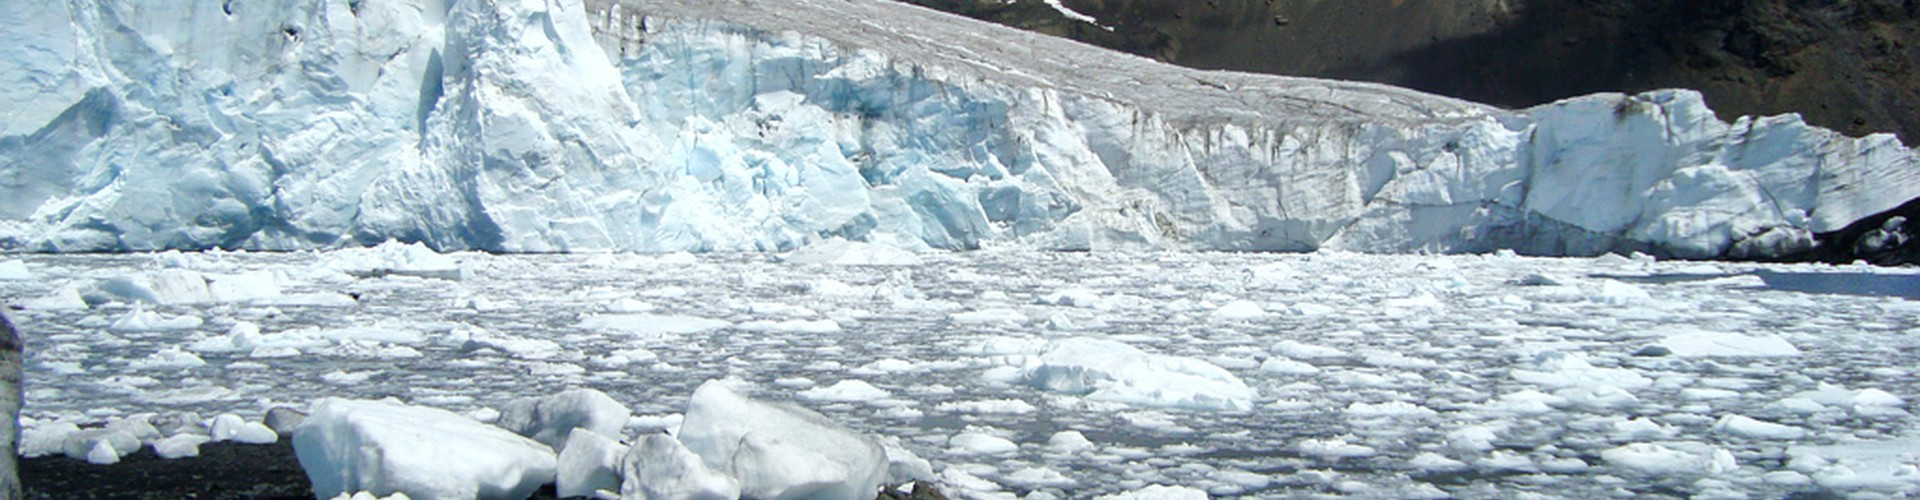 Many glaciers around the world, like the Pastoruri Glacier in Peru (pictured), are retreating due to climate change. (Credit: Edubucher/Wikimedia Commons)